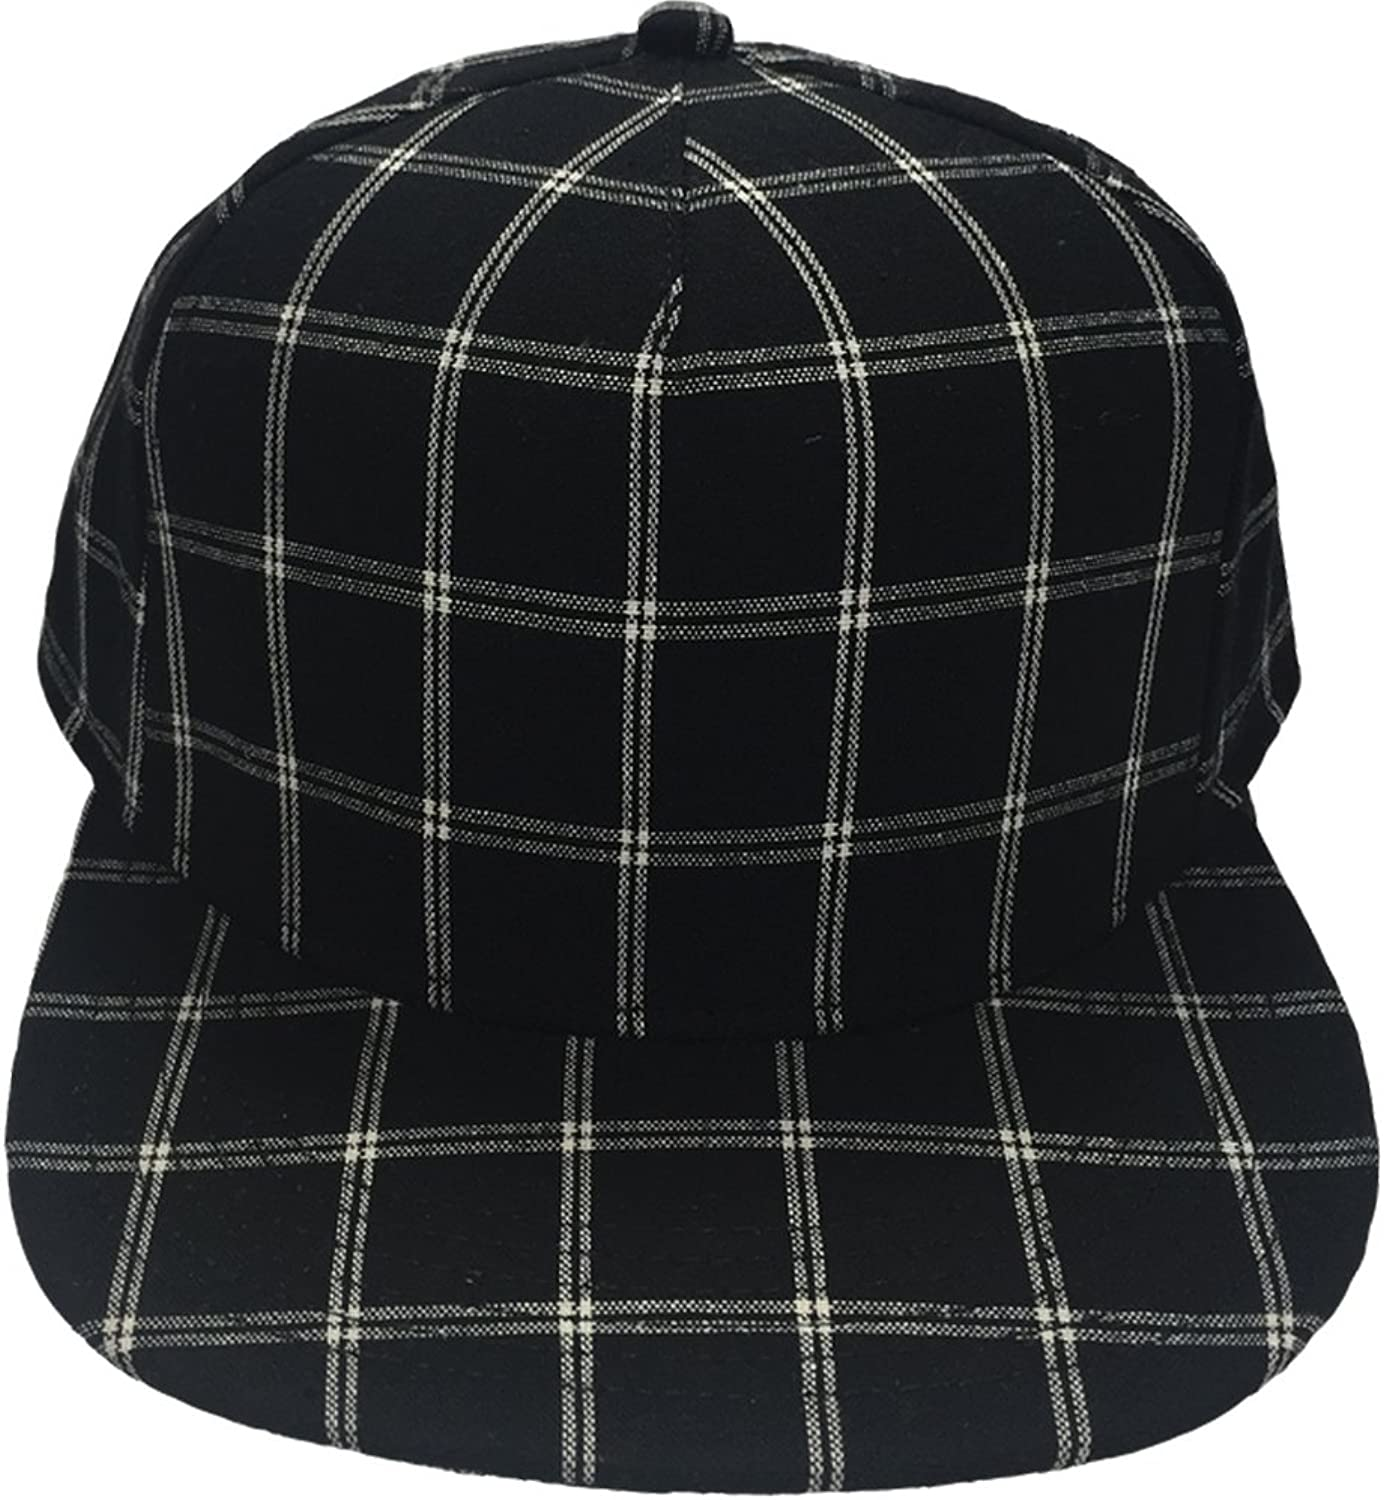 Gents Chairman Black White Cotton Flatbrim